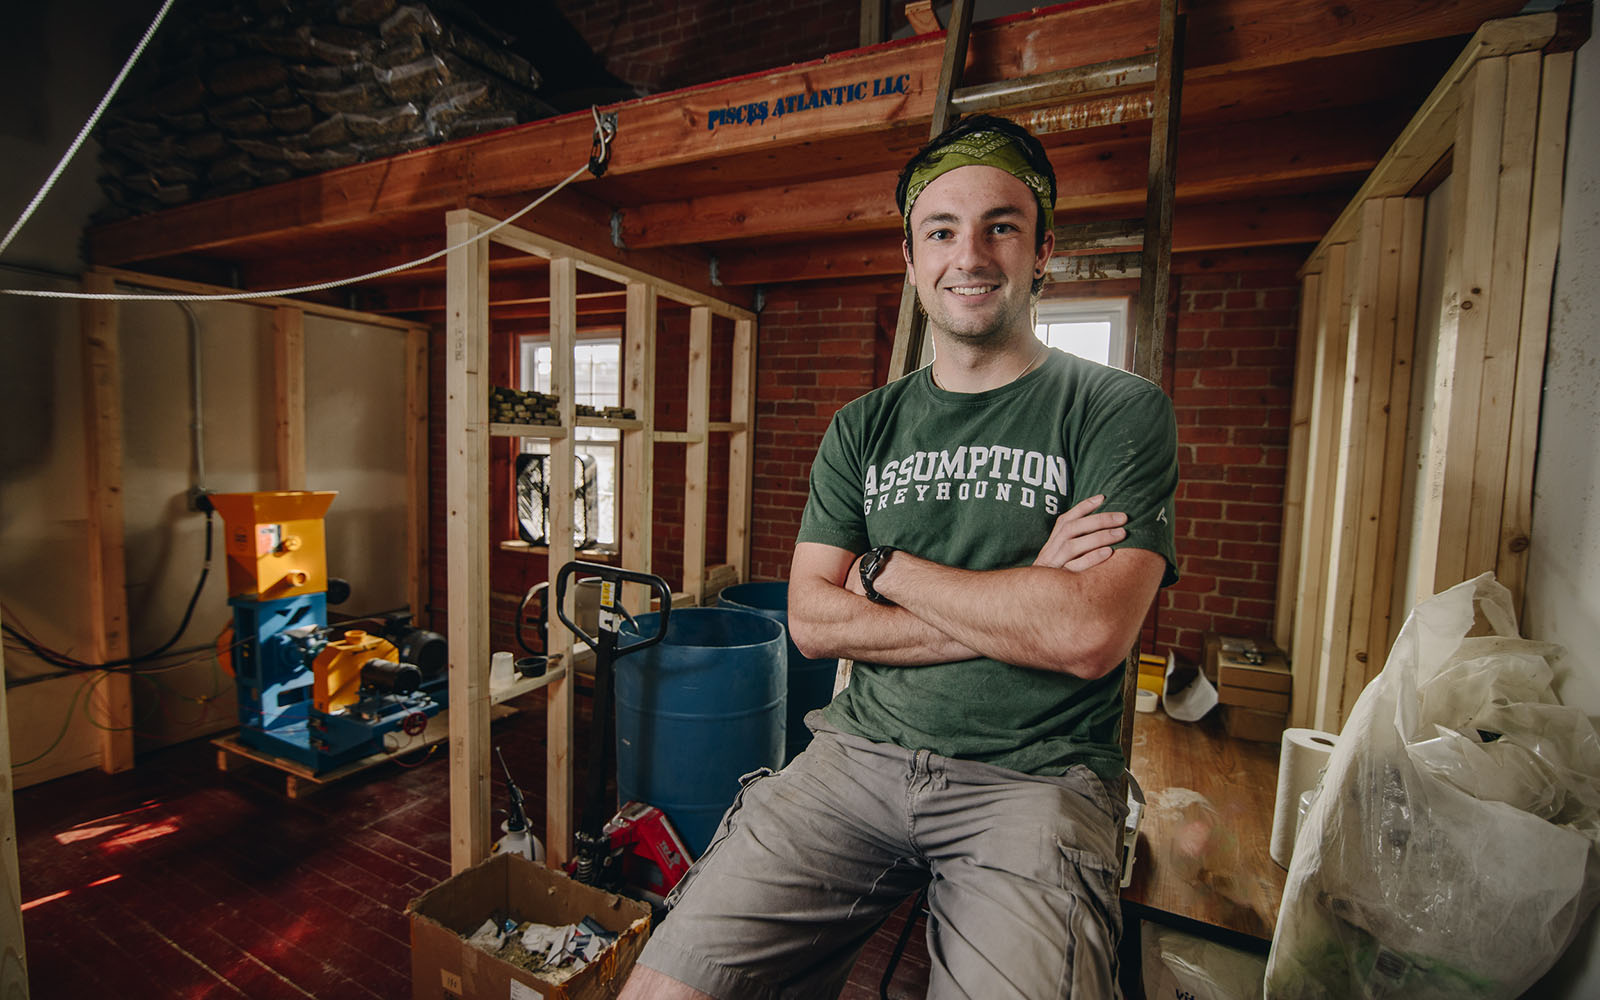 UConn Student Peter Goggins poses in a rustic warehouse.